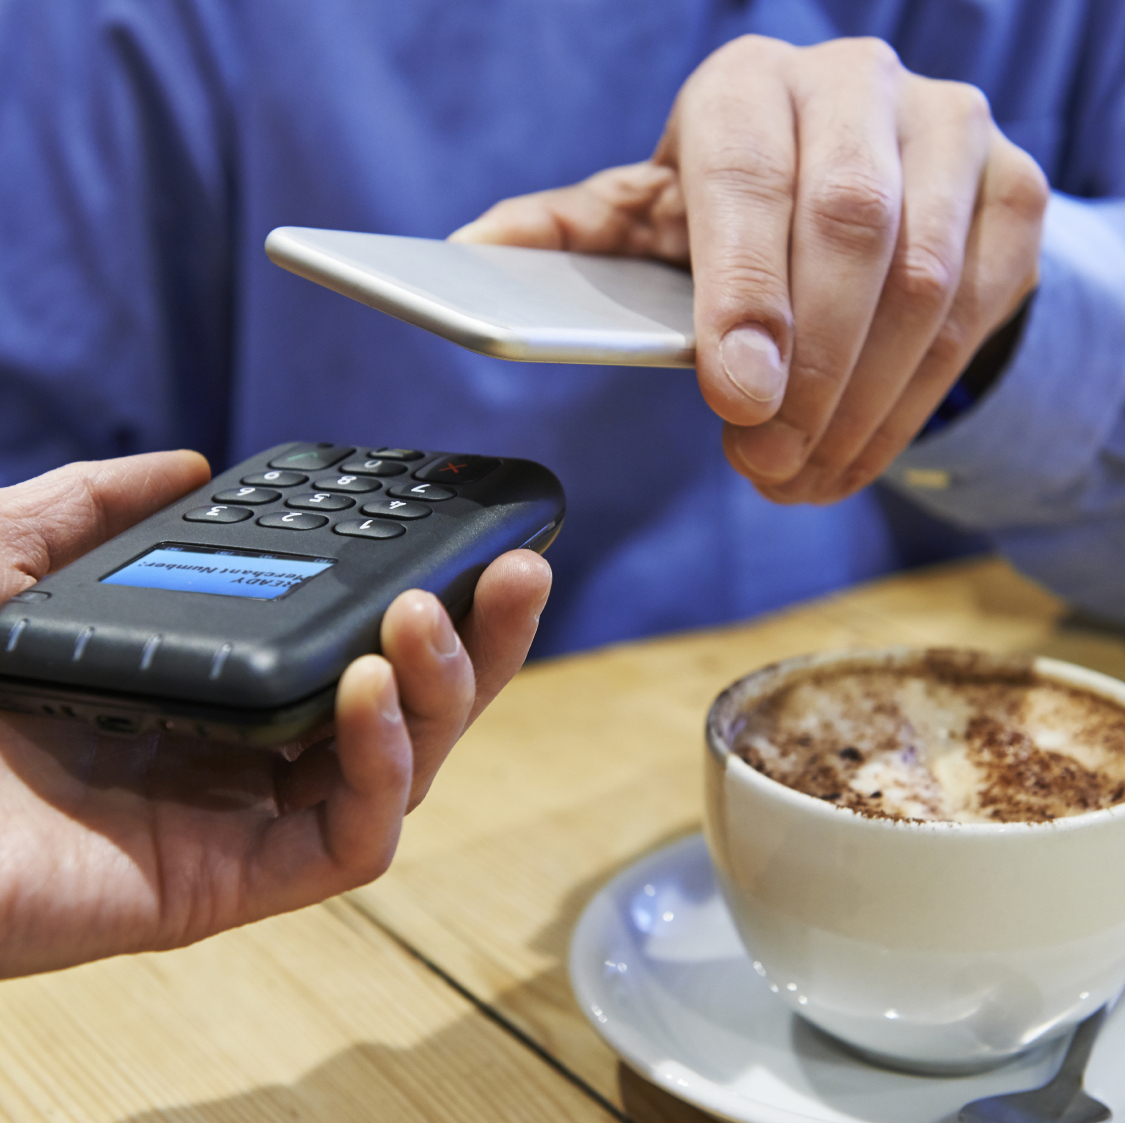 The Landscape of Payment Processing